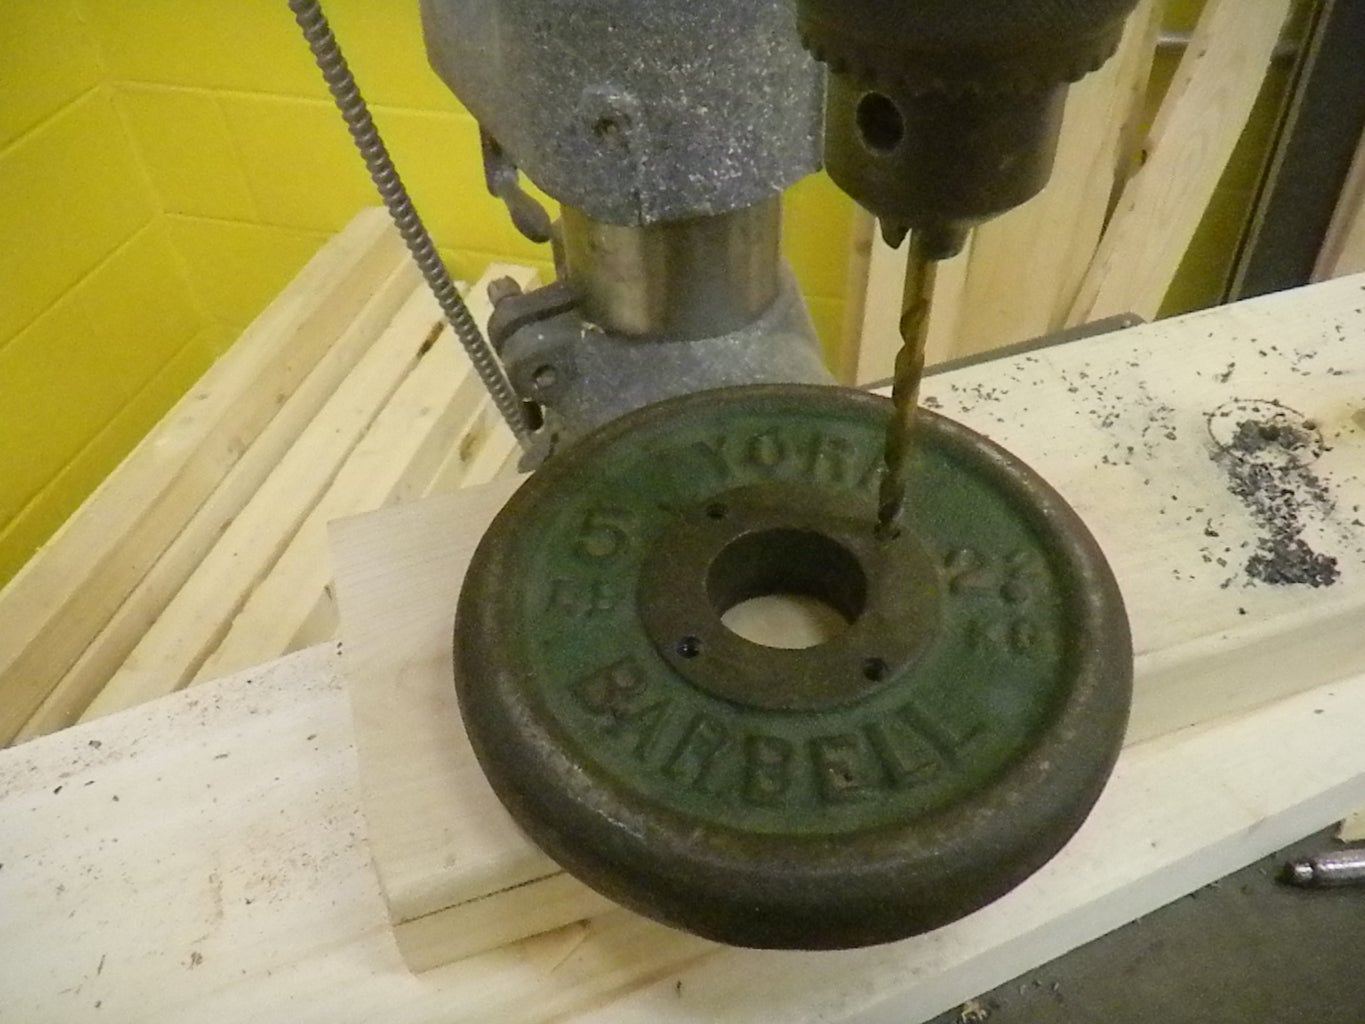 Drilling and Tapping the 5lb Weight